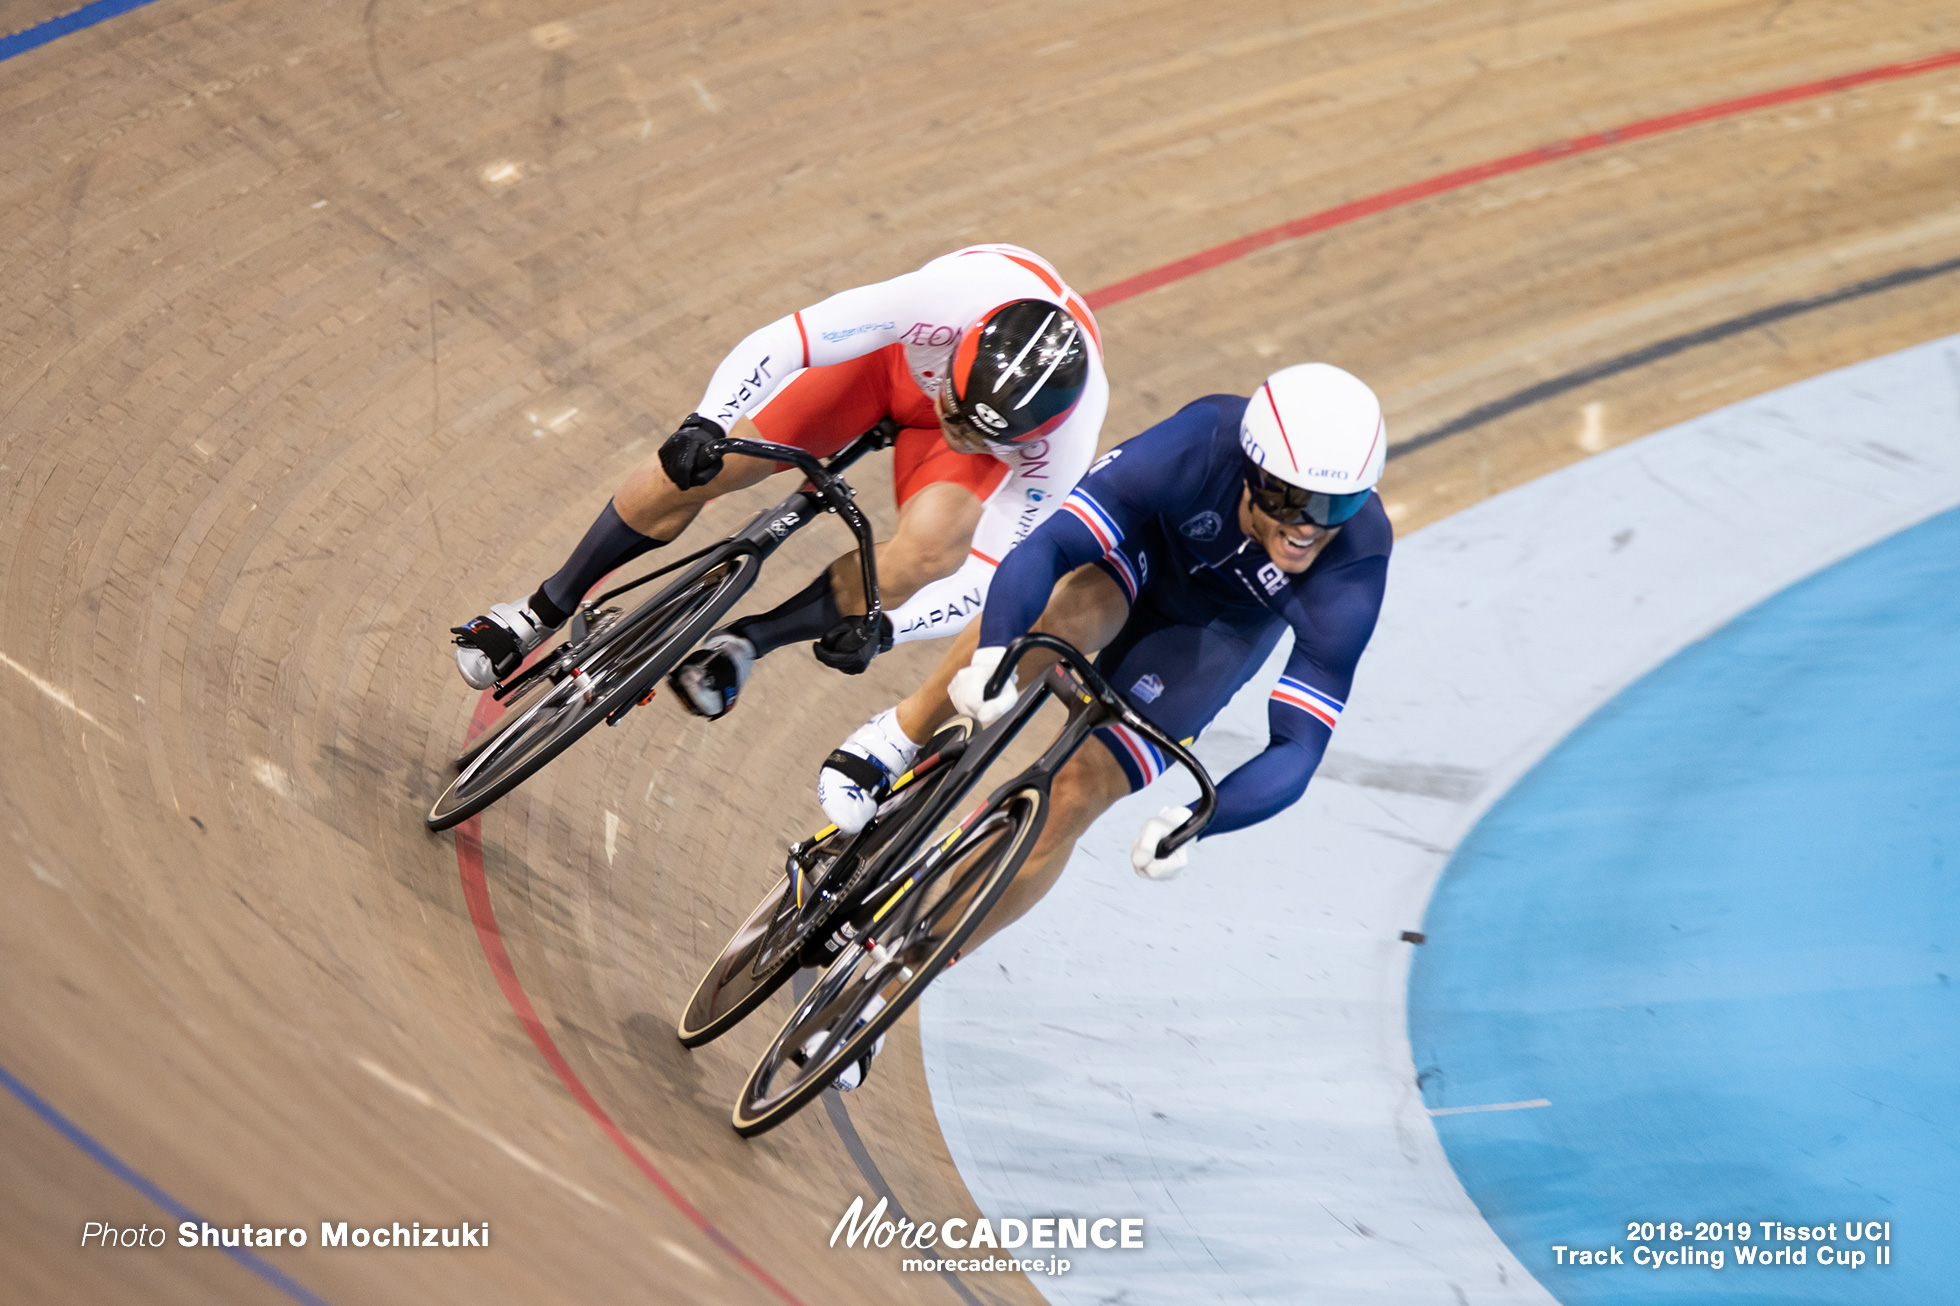 2018-2019 Tissot UCI Track Cycling World Cup II Men's Sprint 2nd Round